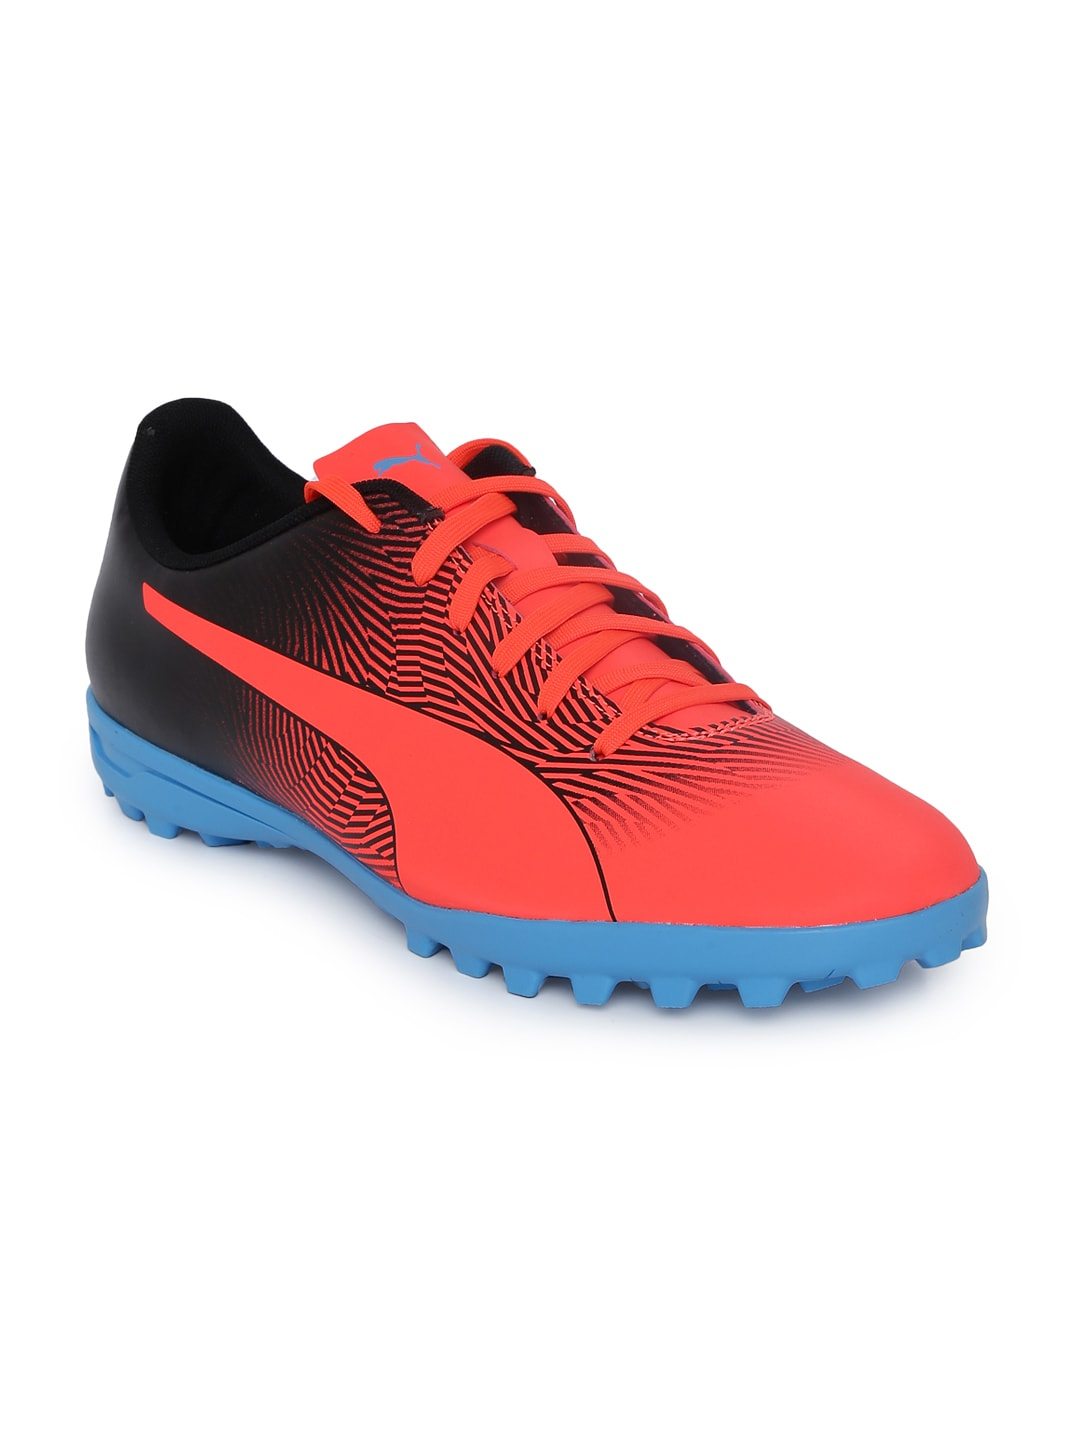 facd3ef364f219 Puma Shoes - Buy Puma Shoes for Men   Women Online in India